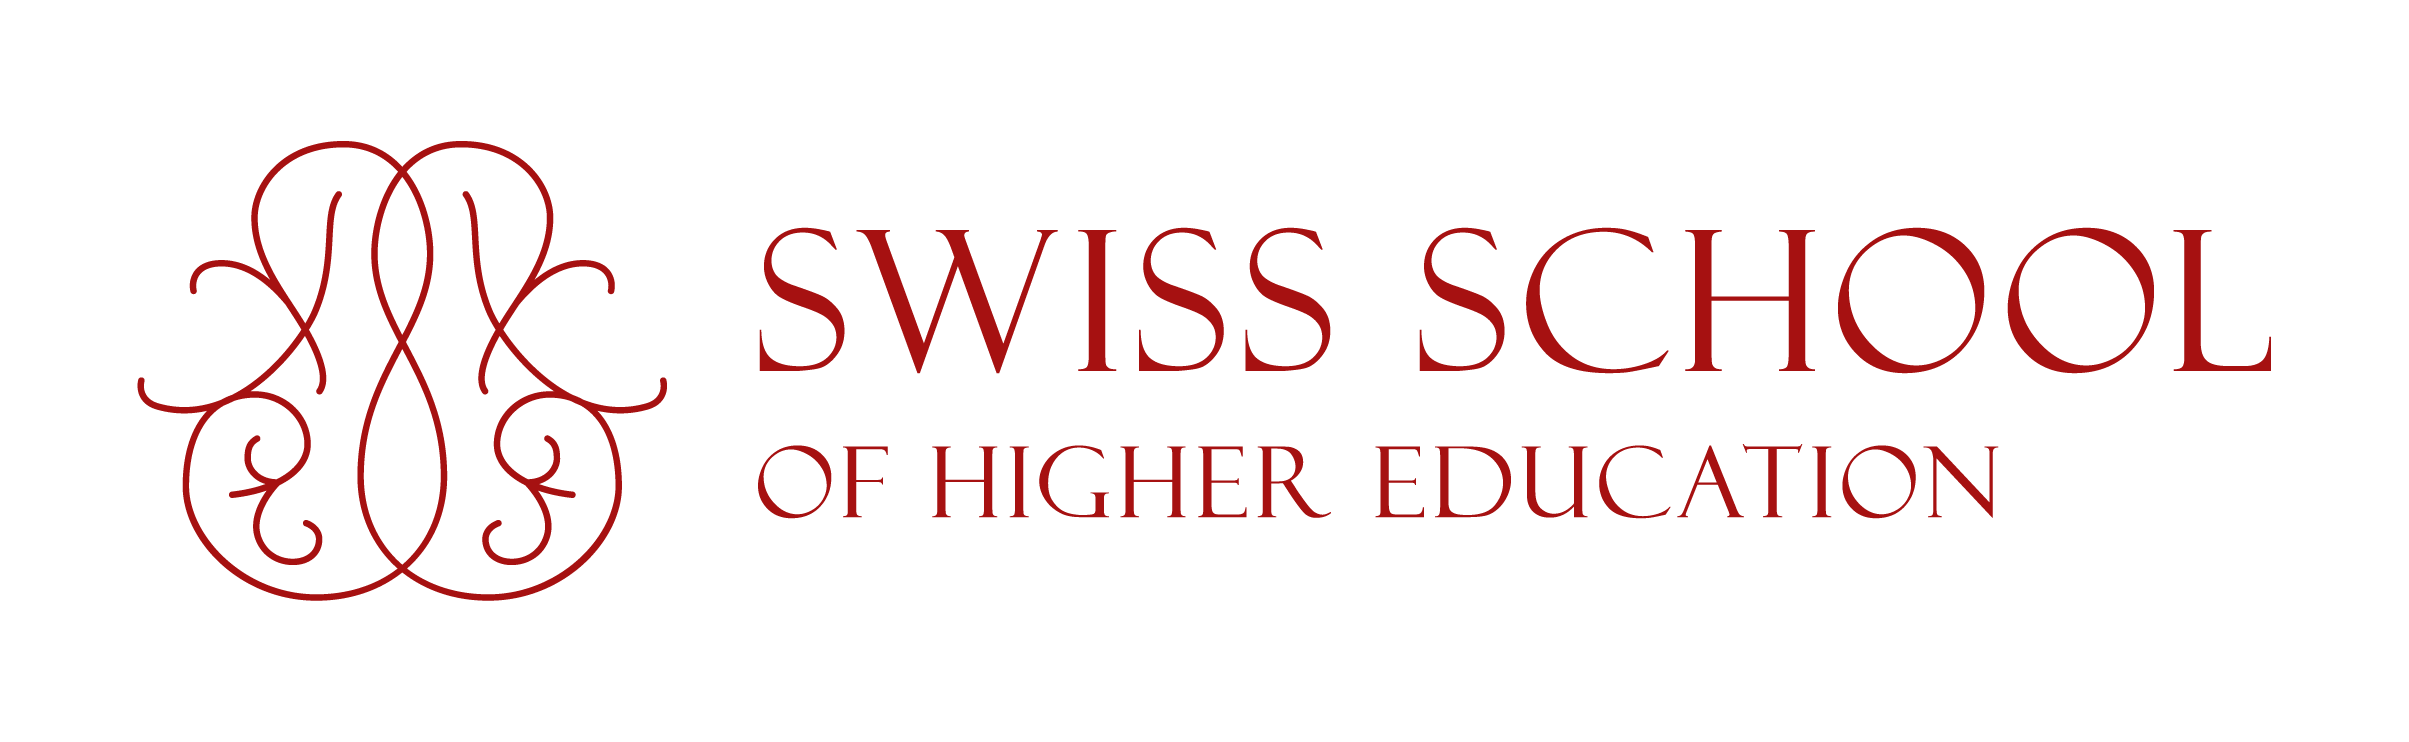 Swiss School of Higher Education